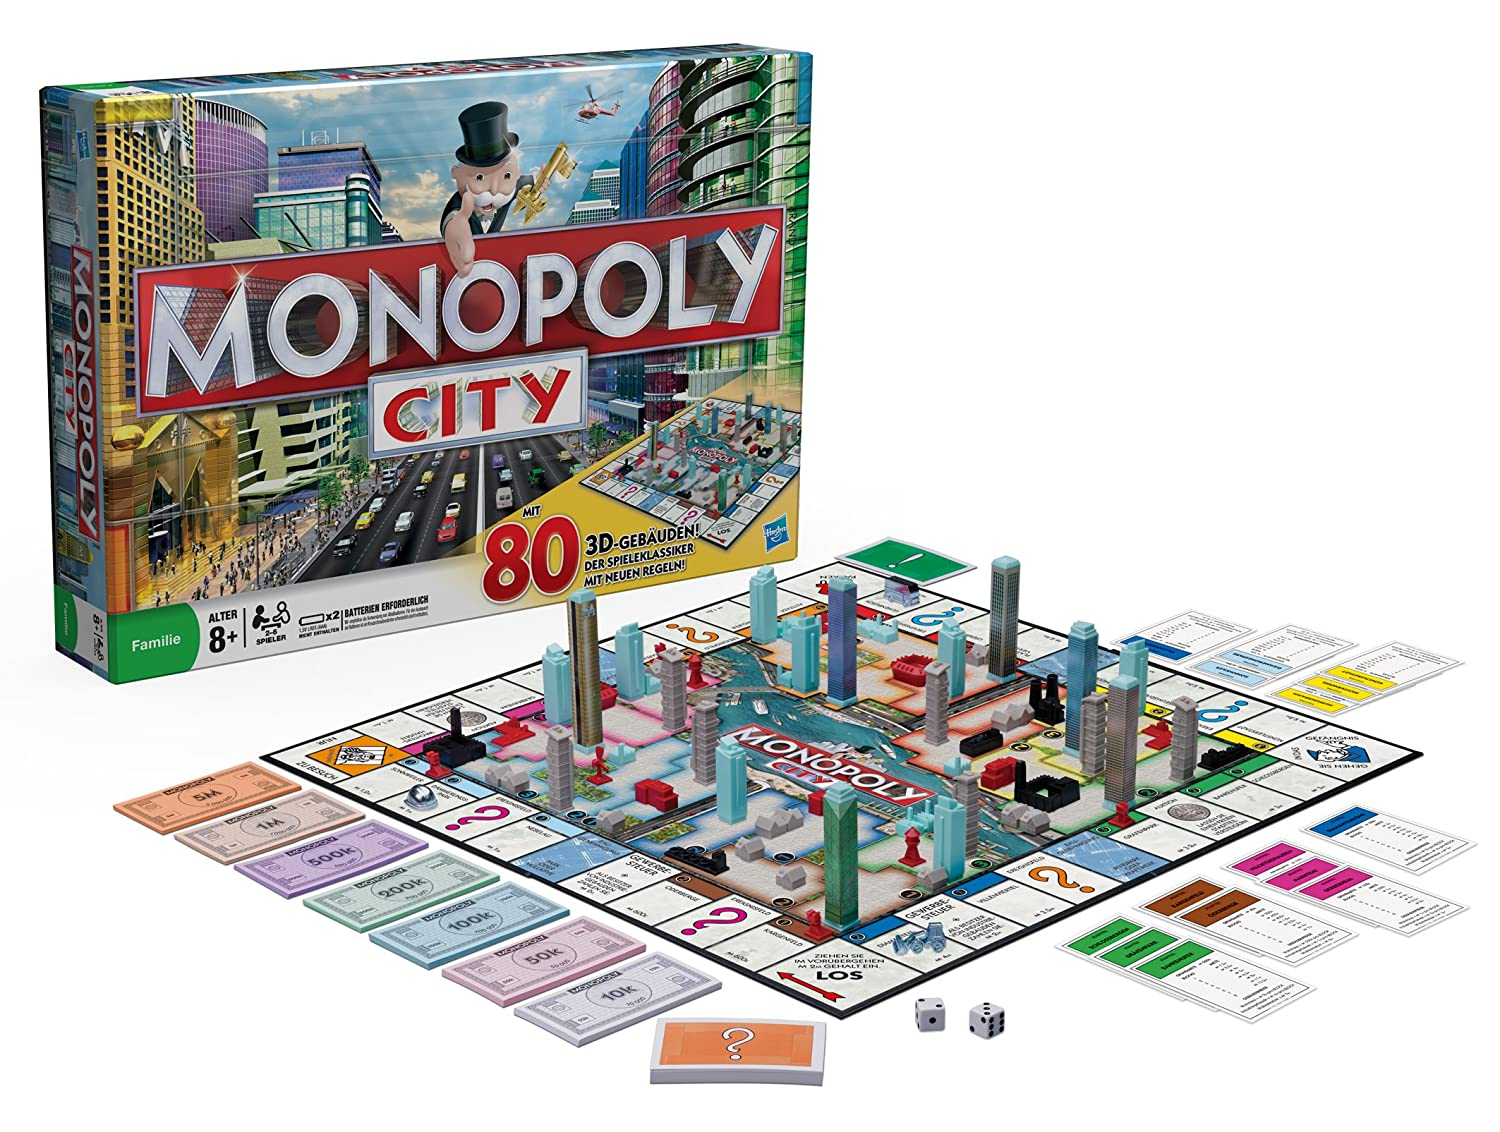 monopoly city - DriverLayer Search Engine